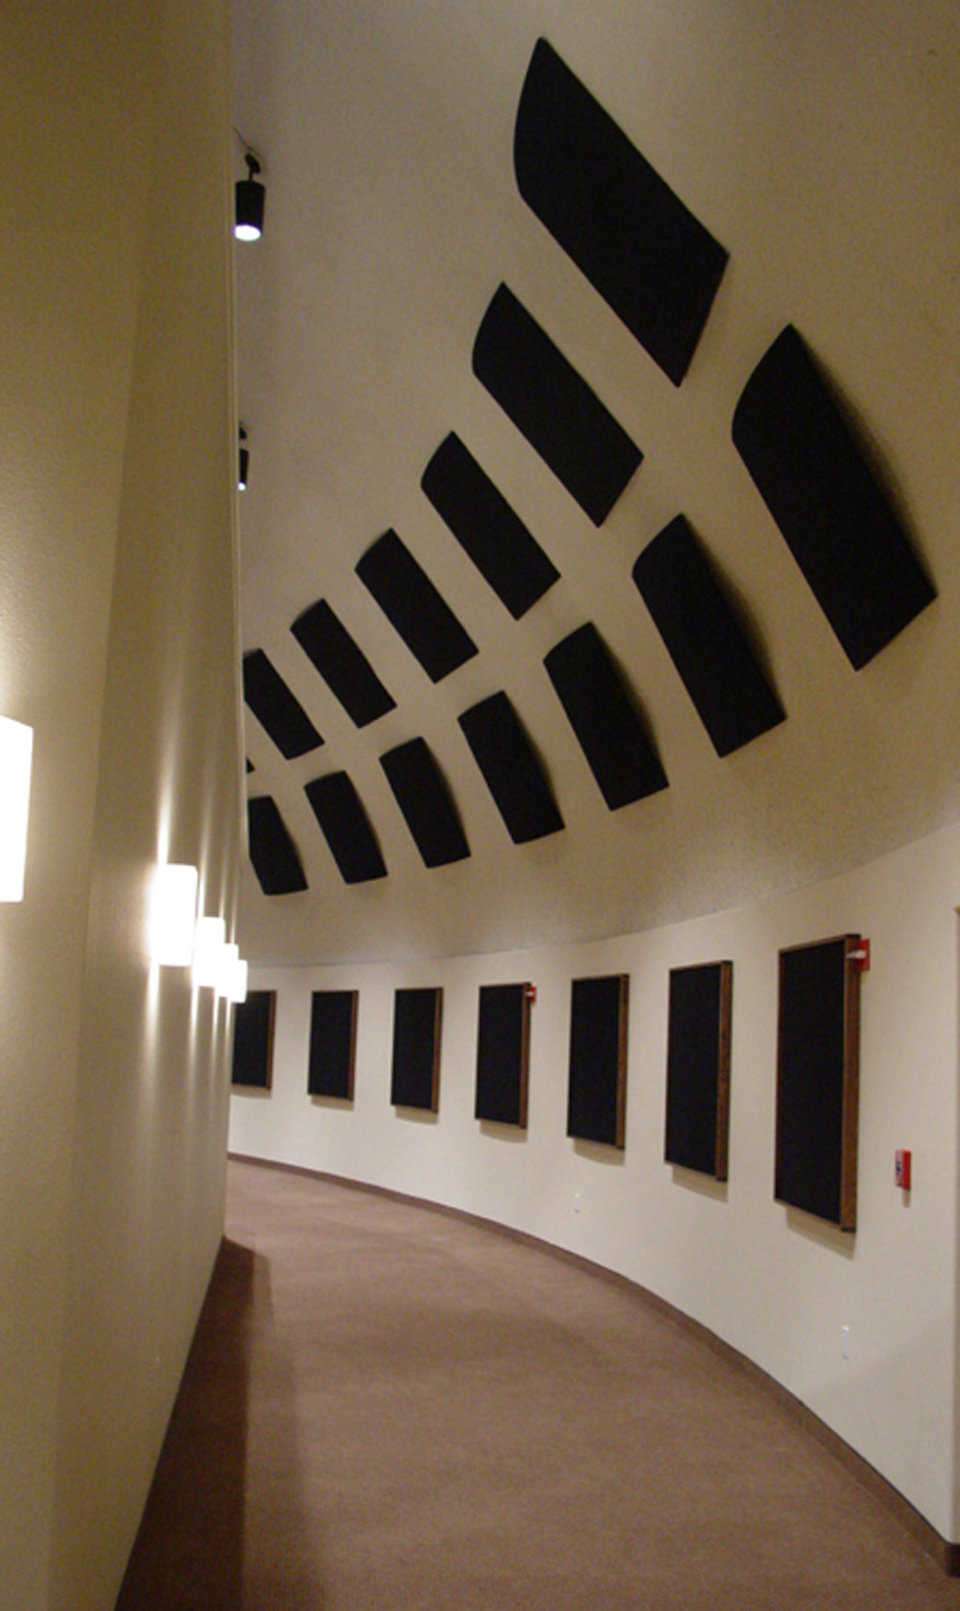 Acoustics — Special panels absorb unwanted echoes.